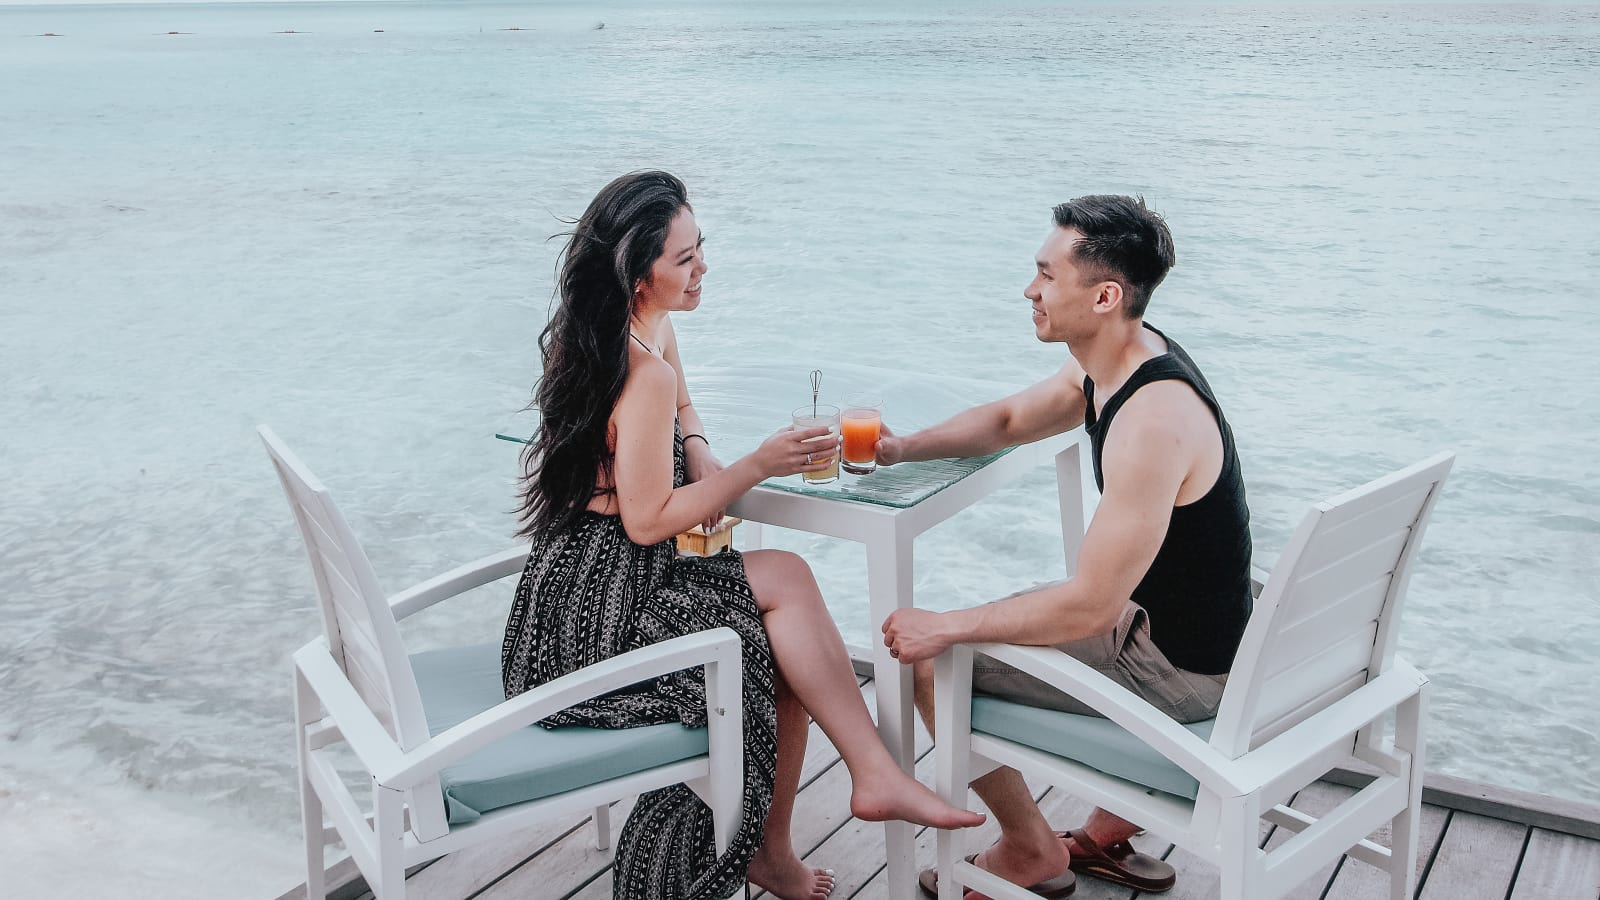 The couple sits at a table each with a drink in their hand.